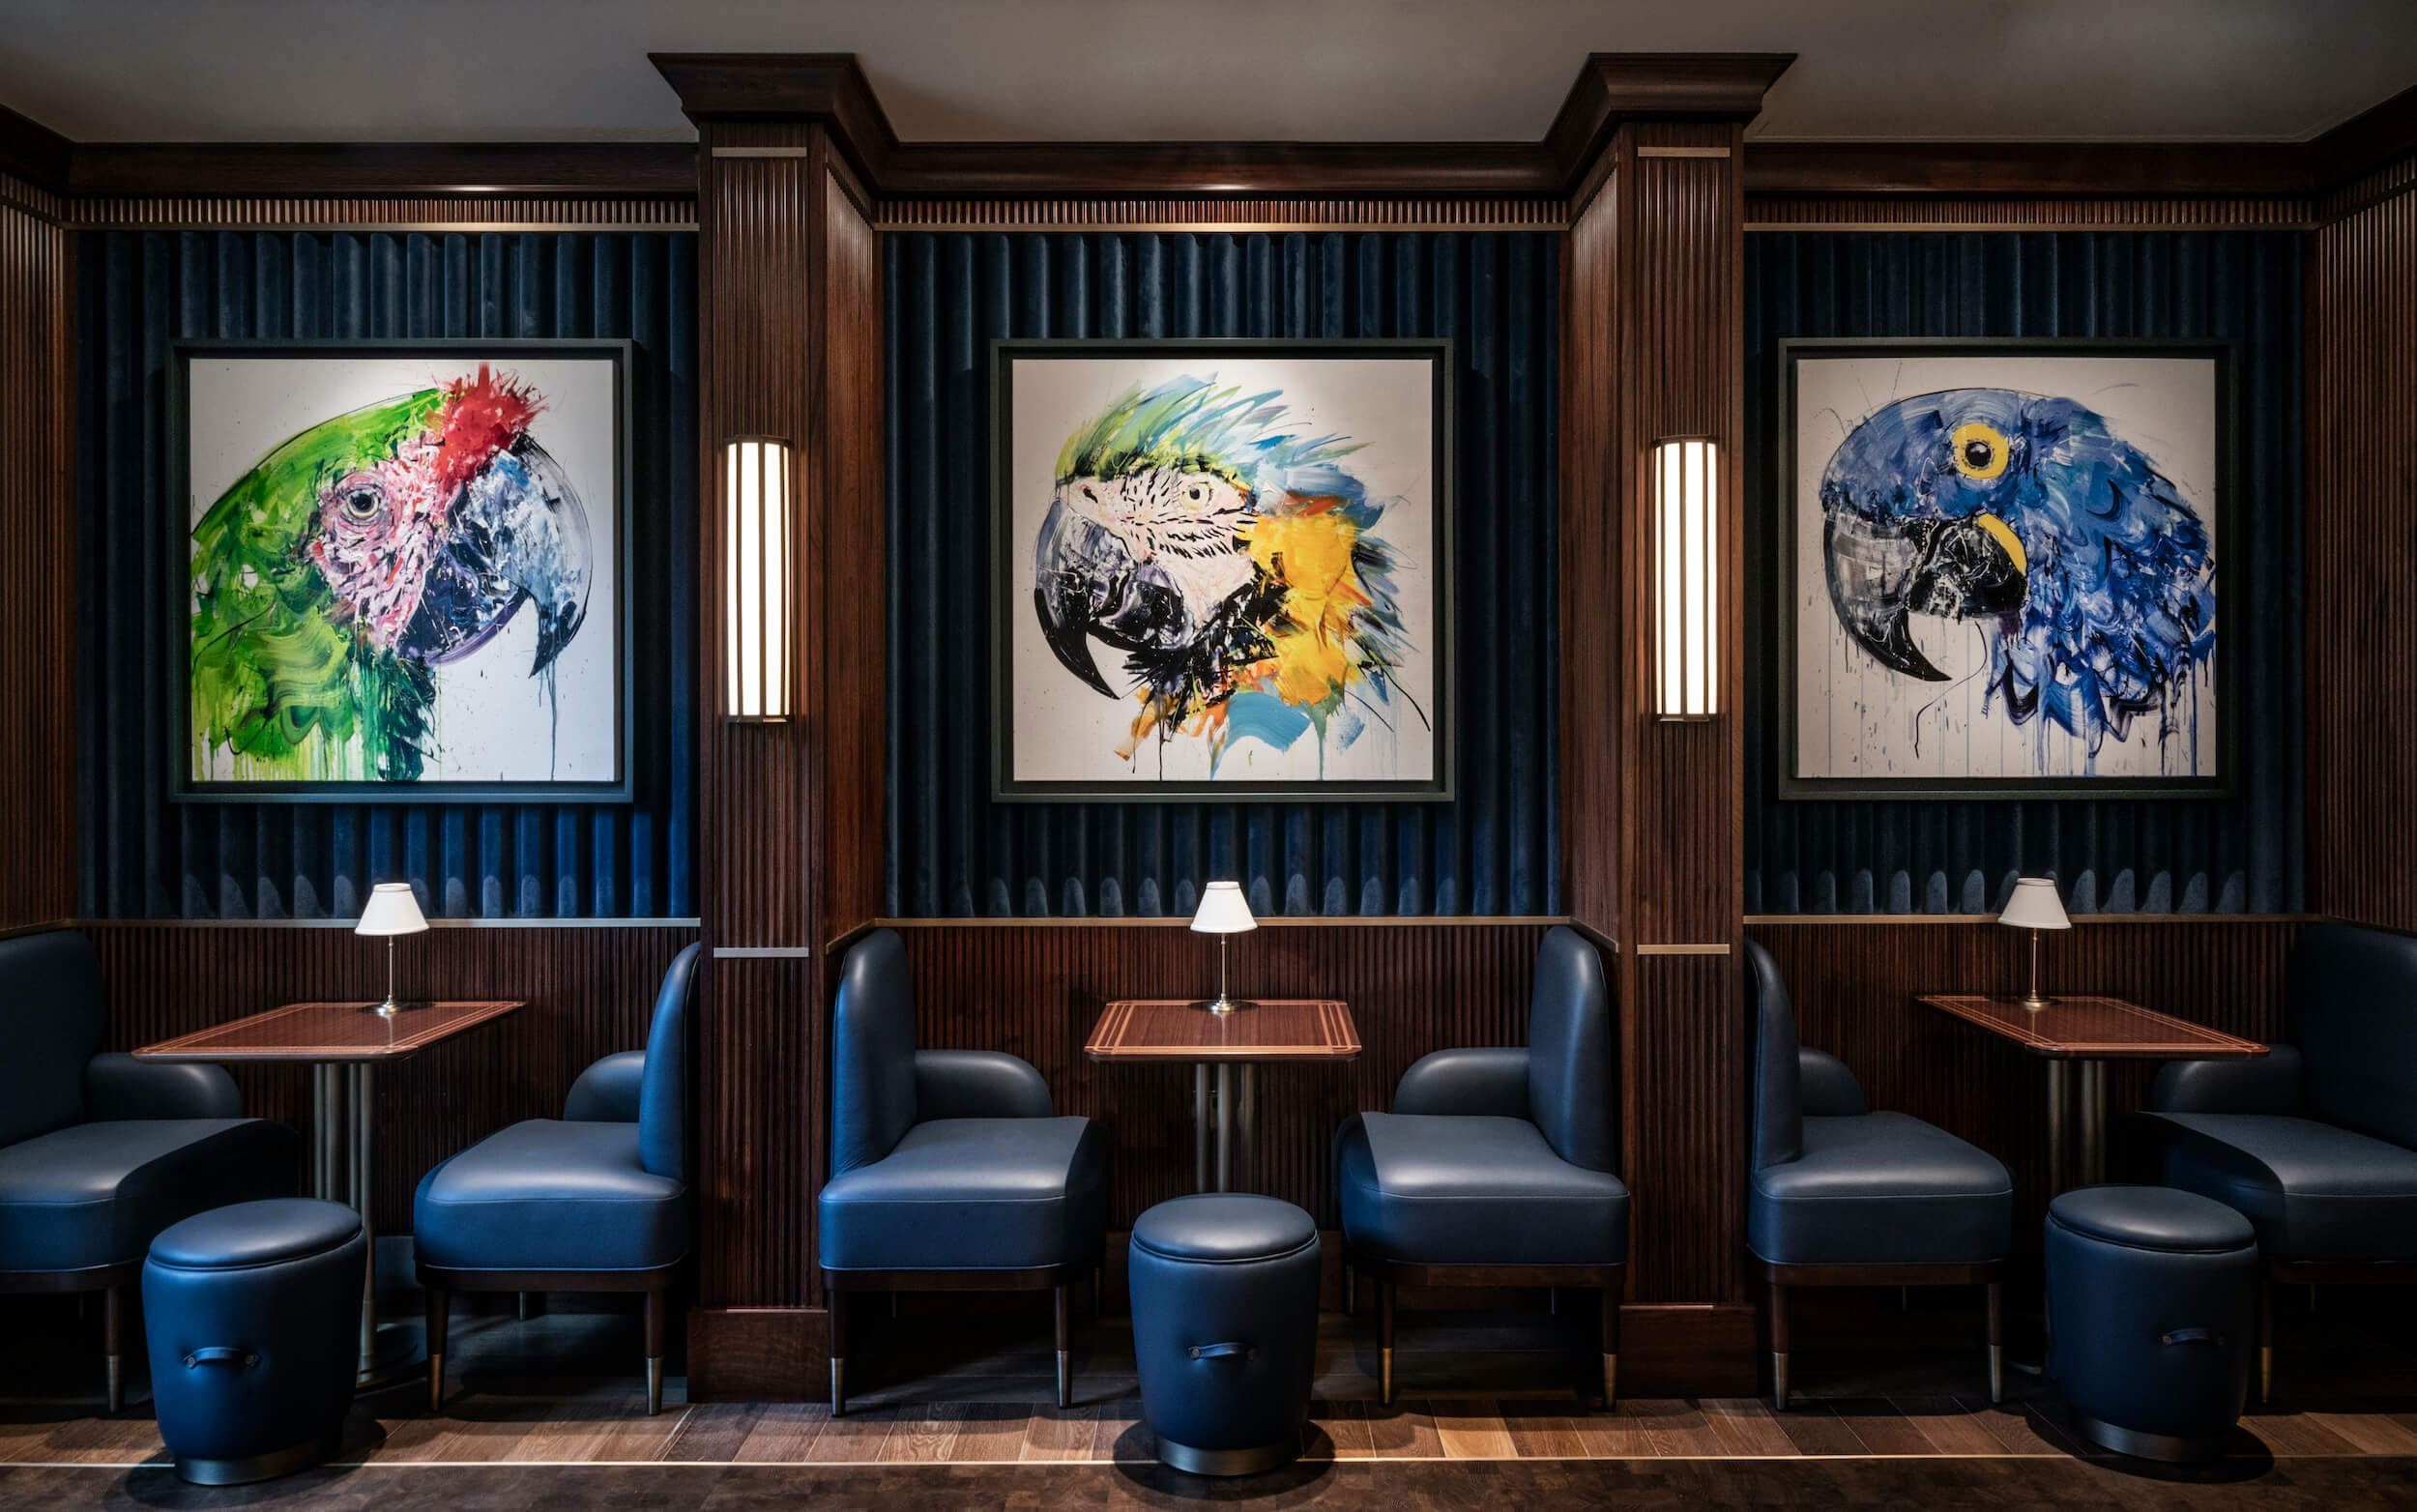 Culfords Bar with works by Dave White